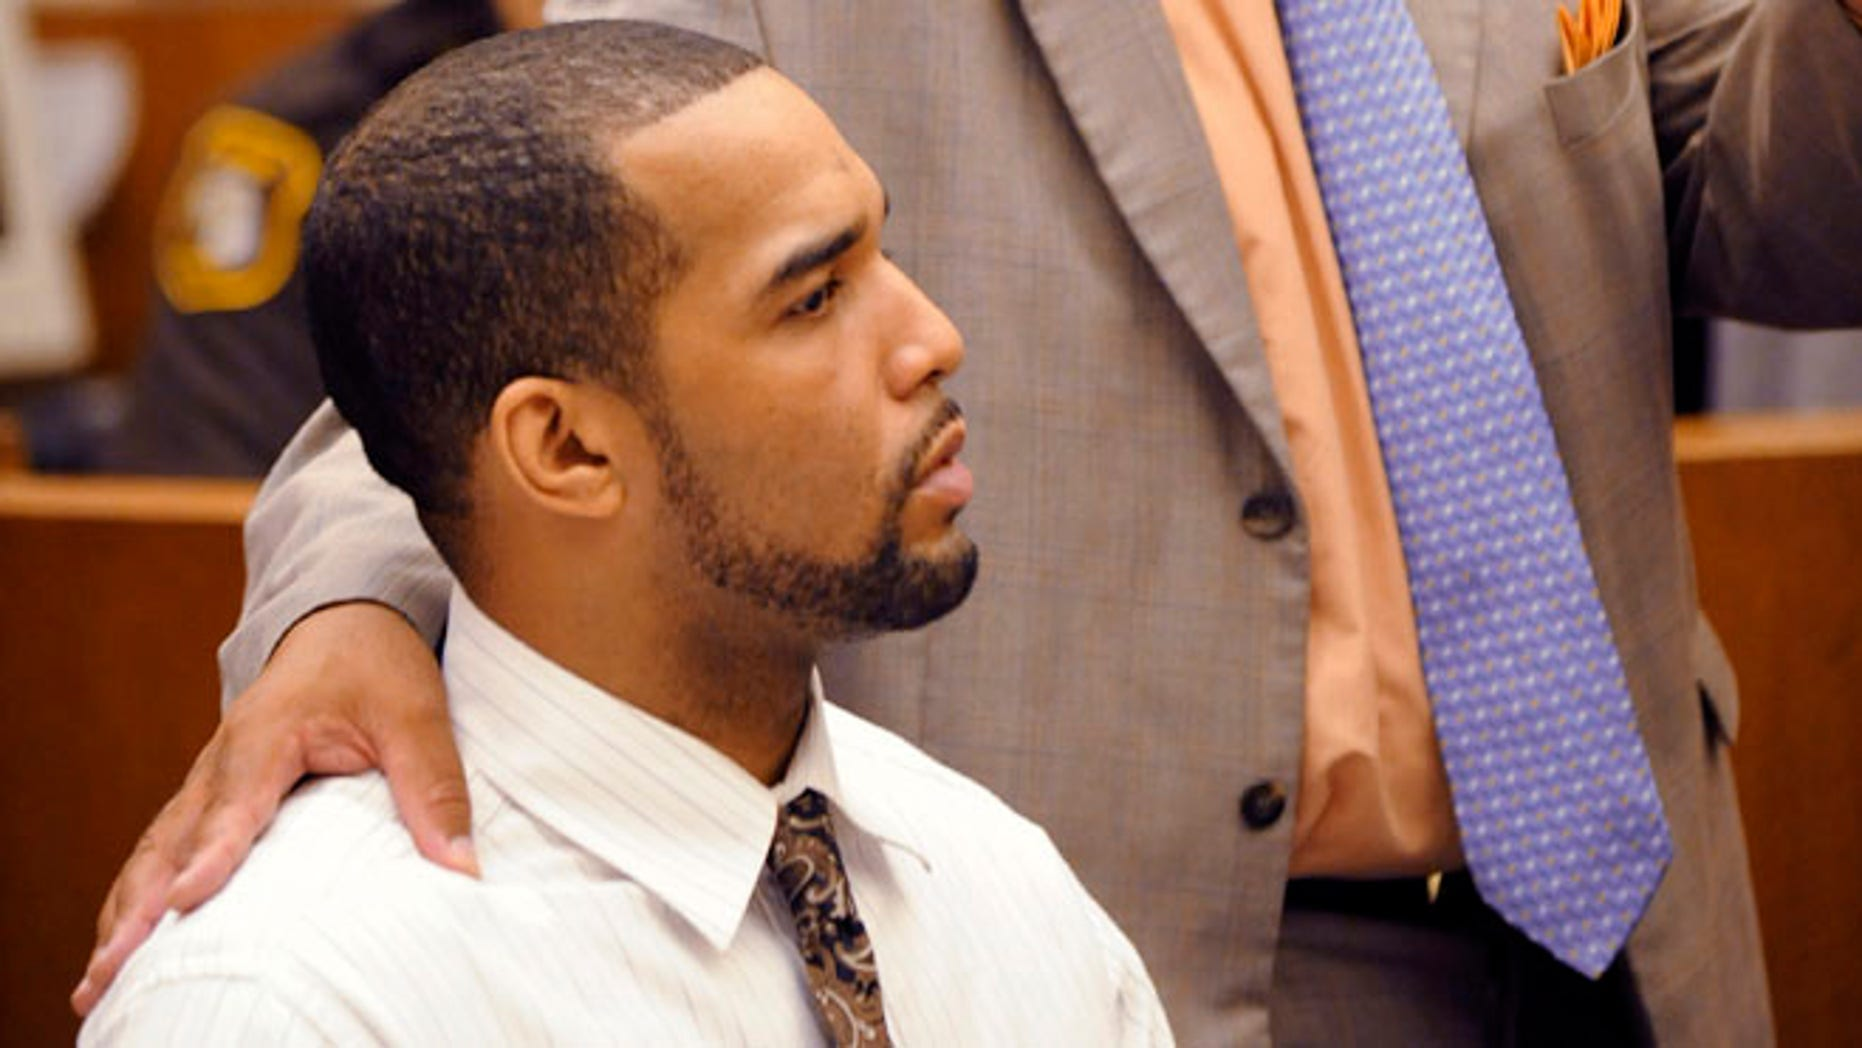 Sept. 19, 2012: D'Andre Lane, left, listens to his defense attorney Terry L. Johnson speak during Lane's trial before Judge Vonda R. Evans at Frank Murphy Hall of Justice in Detroit.